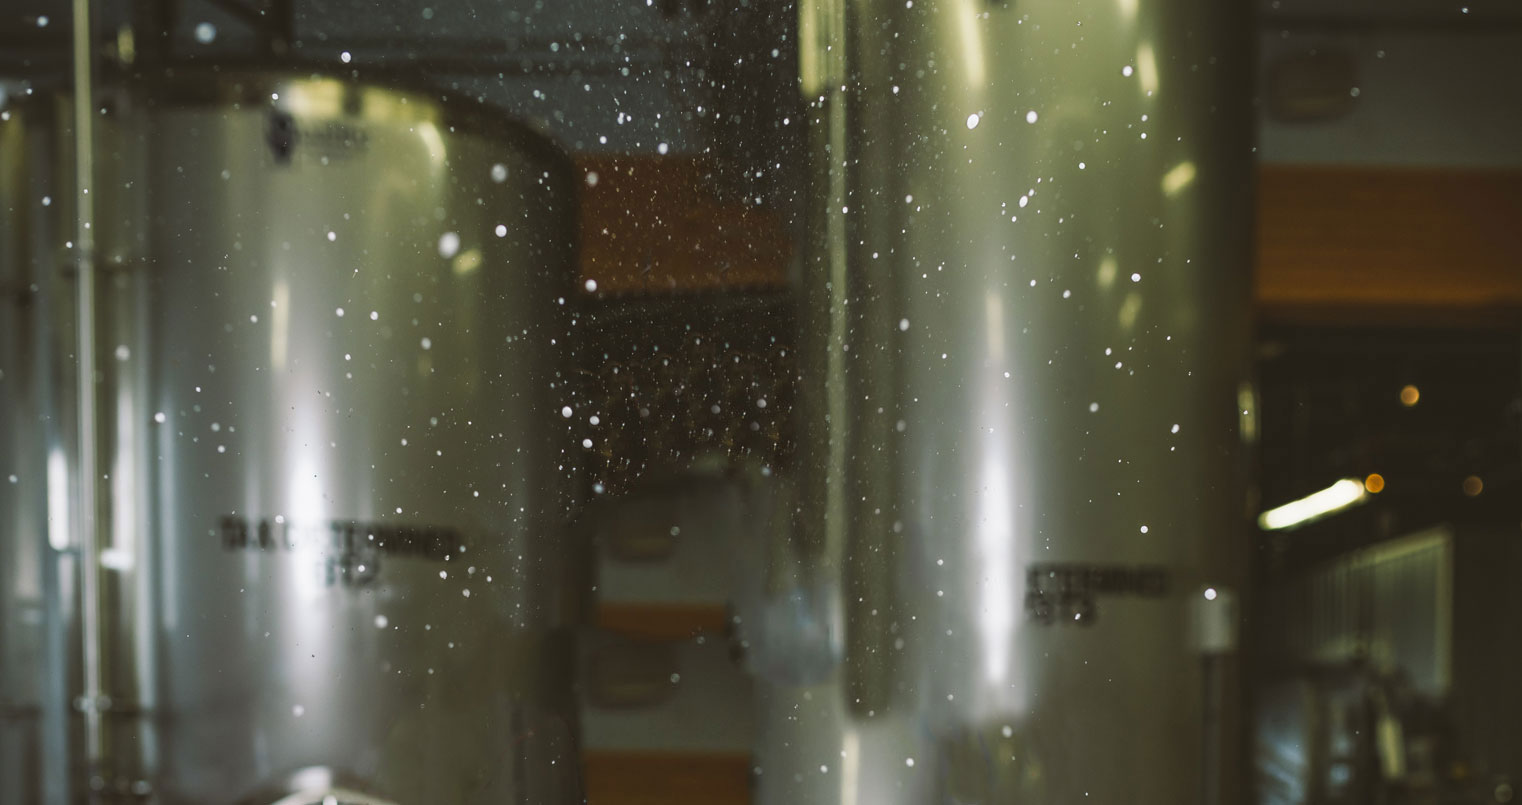 A man holds a foaming can of beer to his lips, droplets floating around his face.